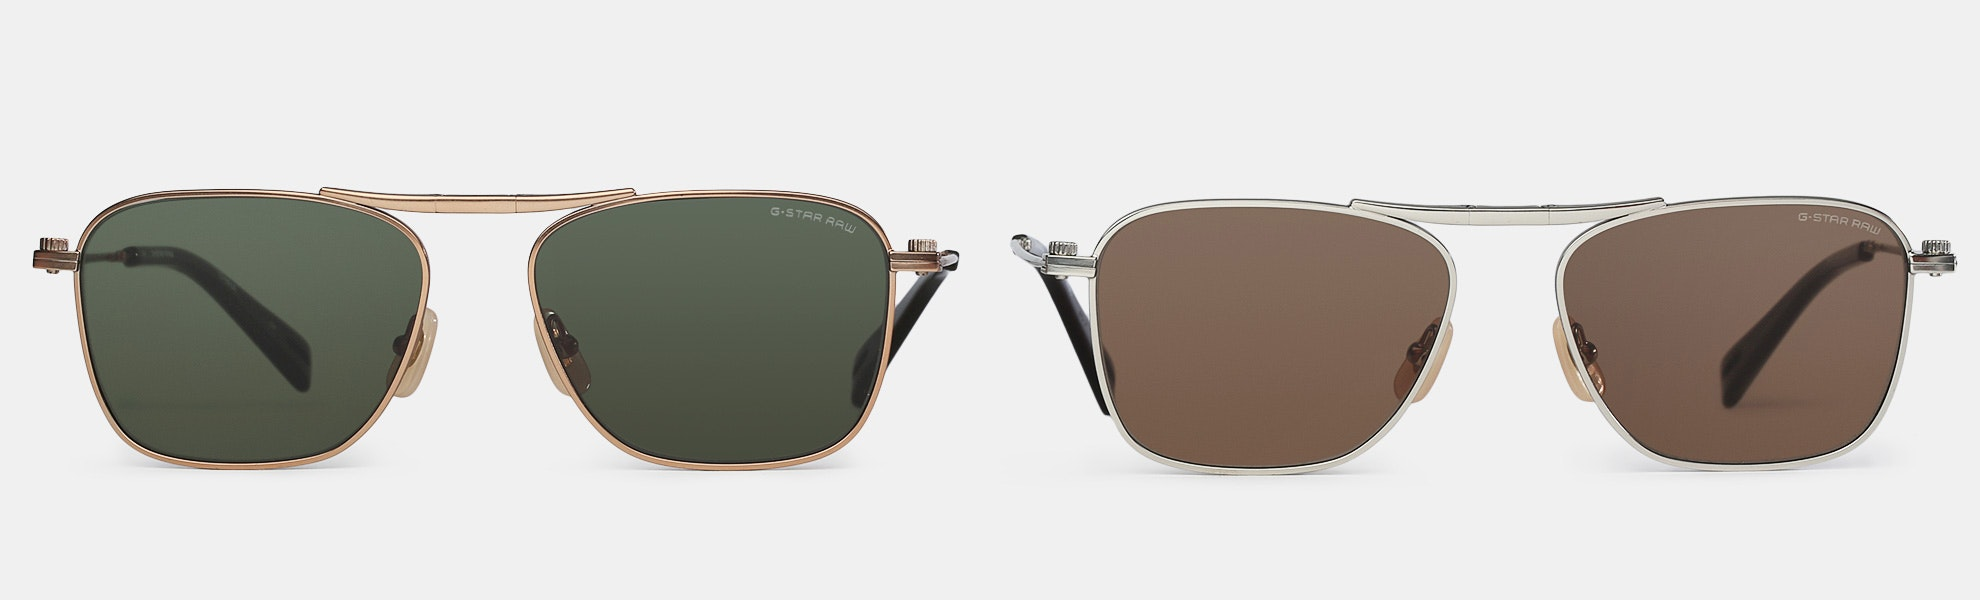 G-Star Raw Folding Aviator Sunglasses